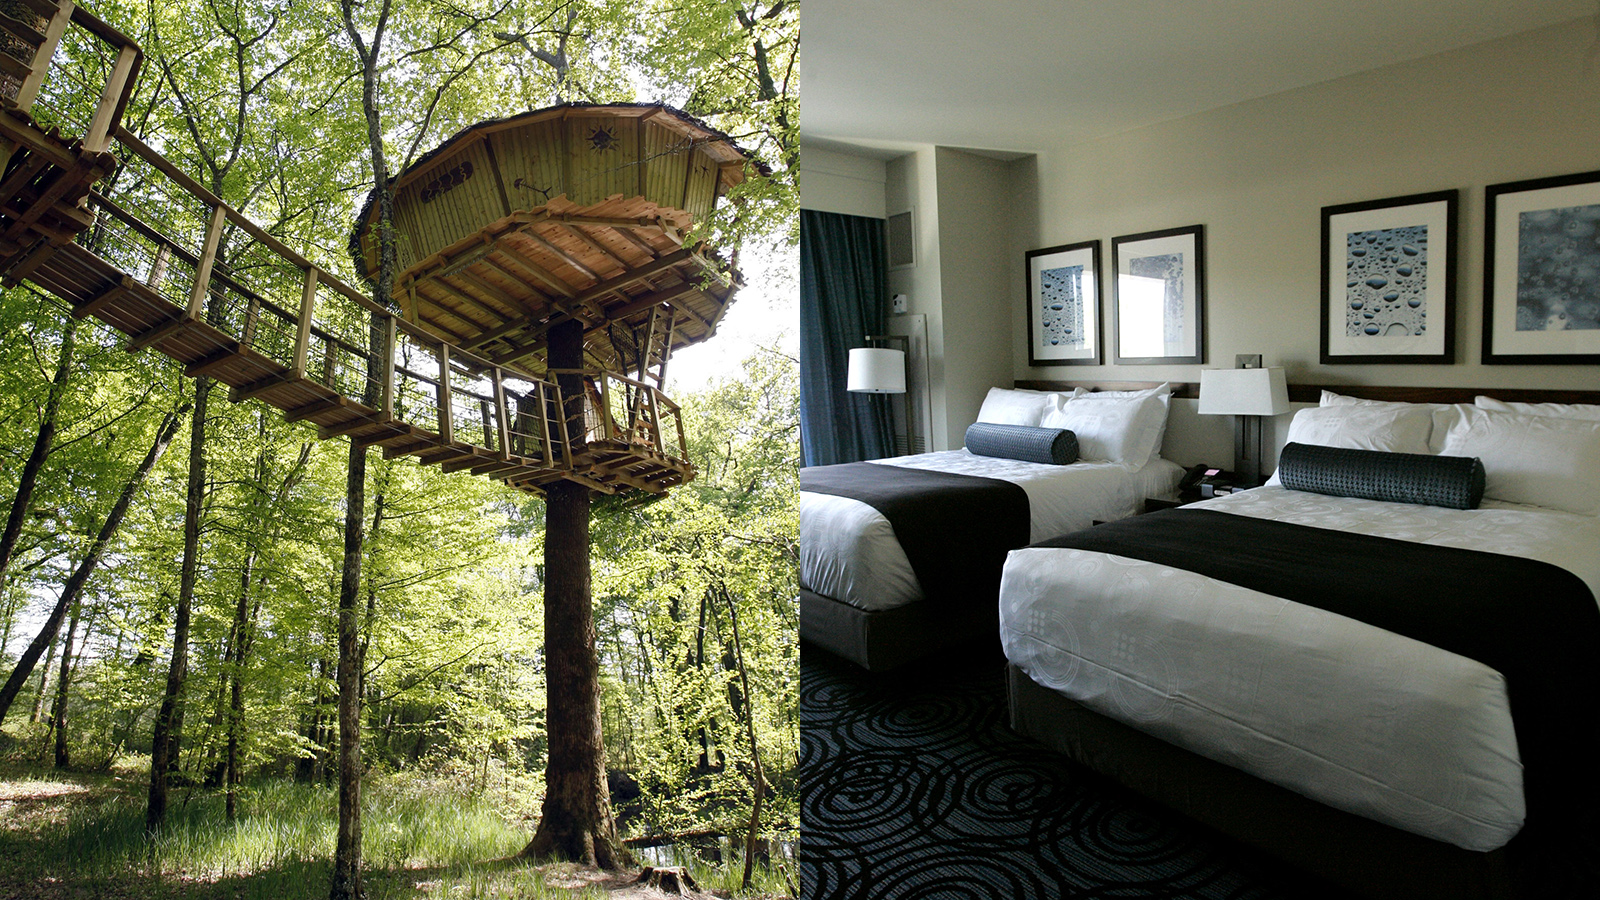 tree house versus hotel room